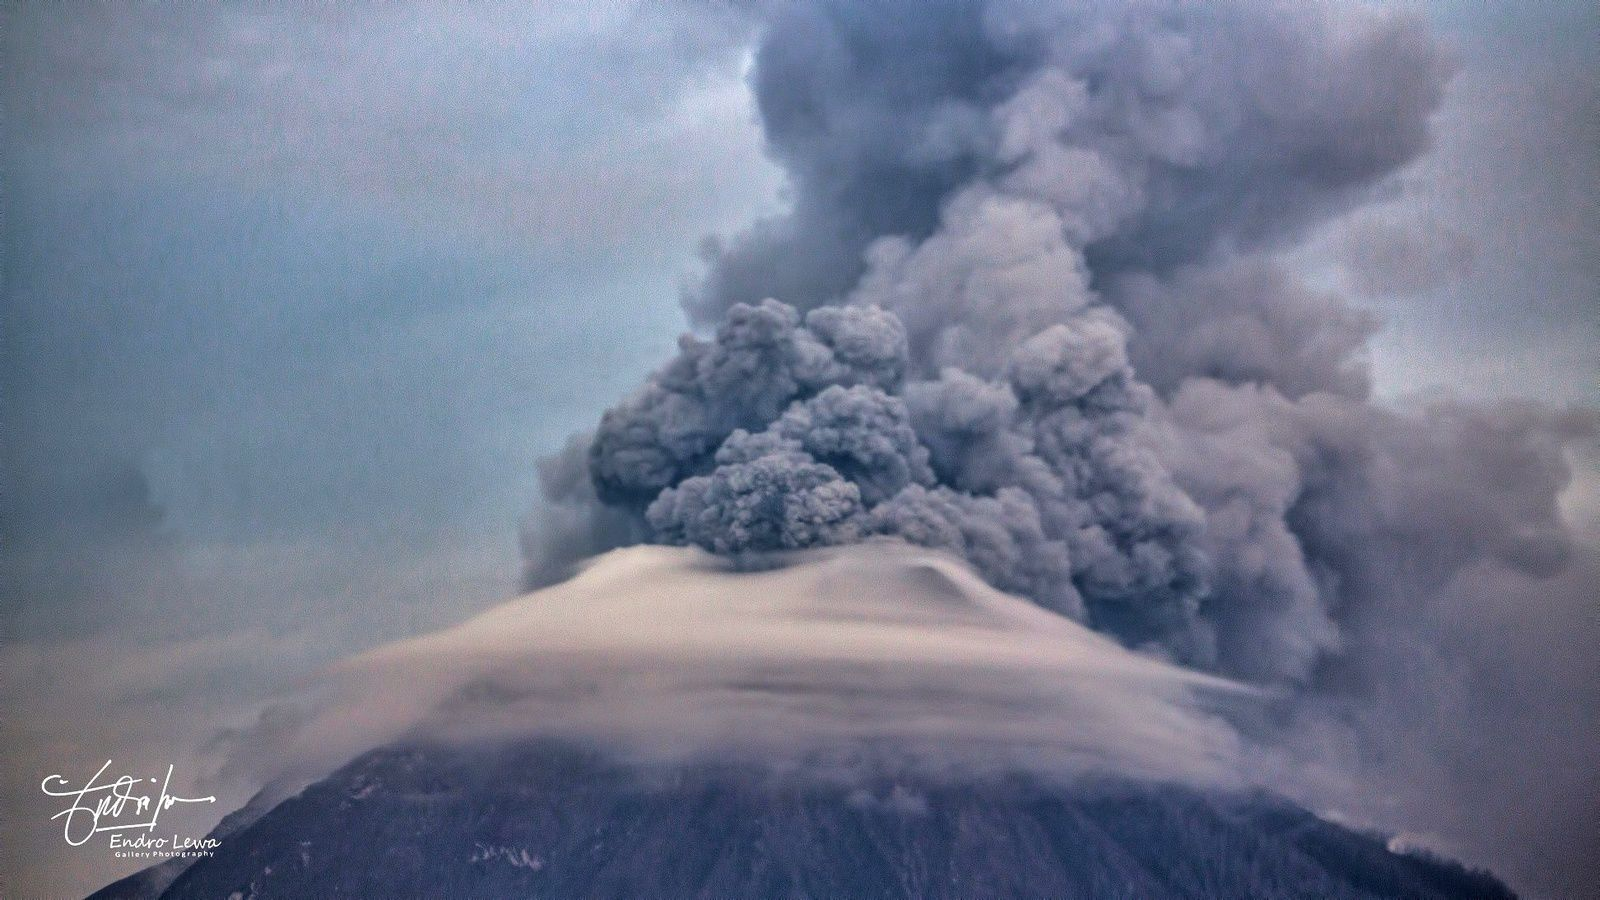 Sinabung - émission de cendres le 19.05.2018 / 7h19  - photo  Mbah Lewa